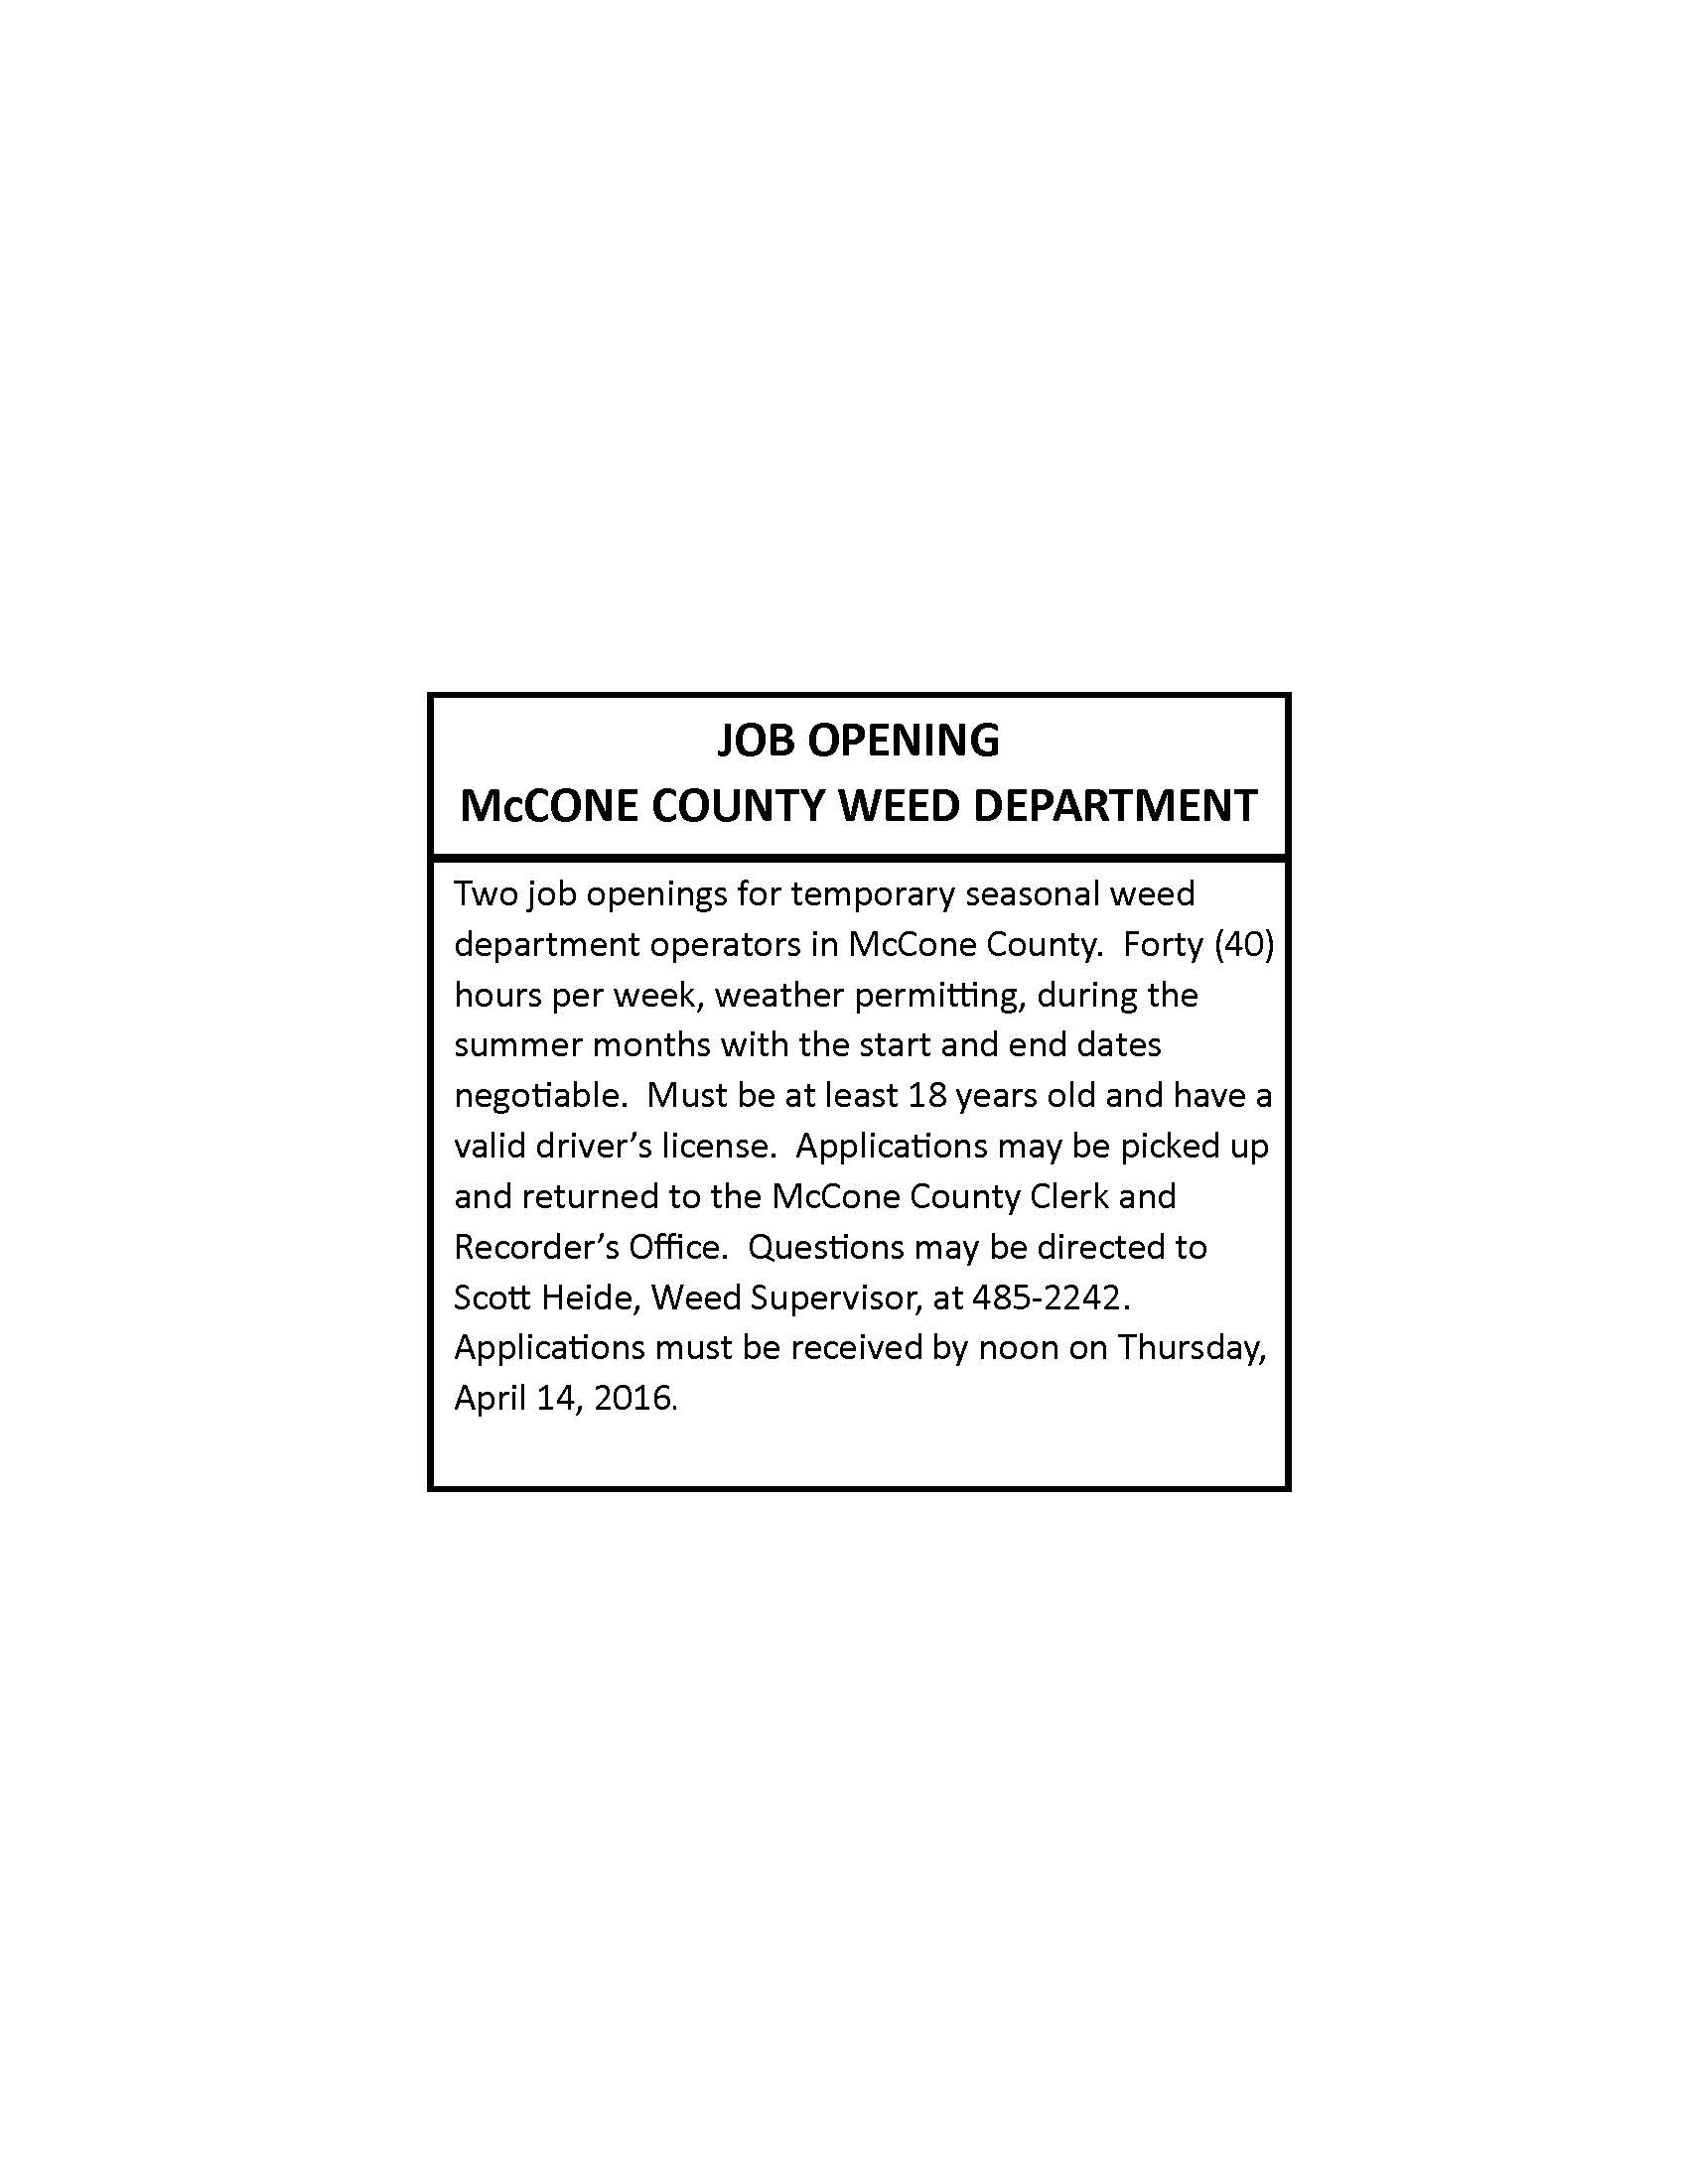 Montana mccone county circle - Mccone County Weed Department